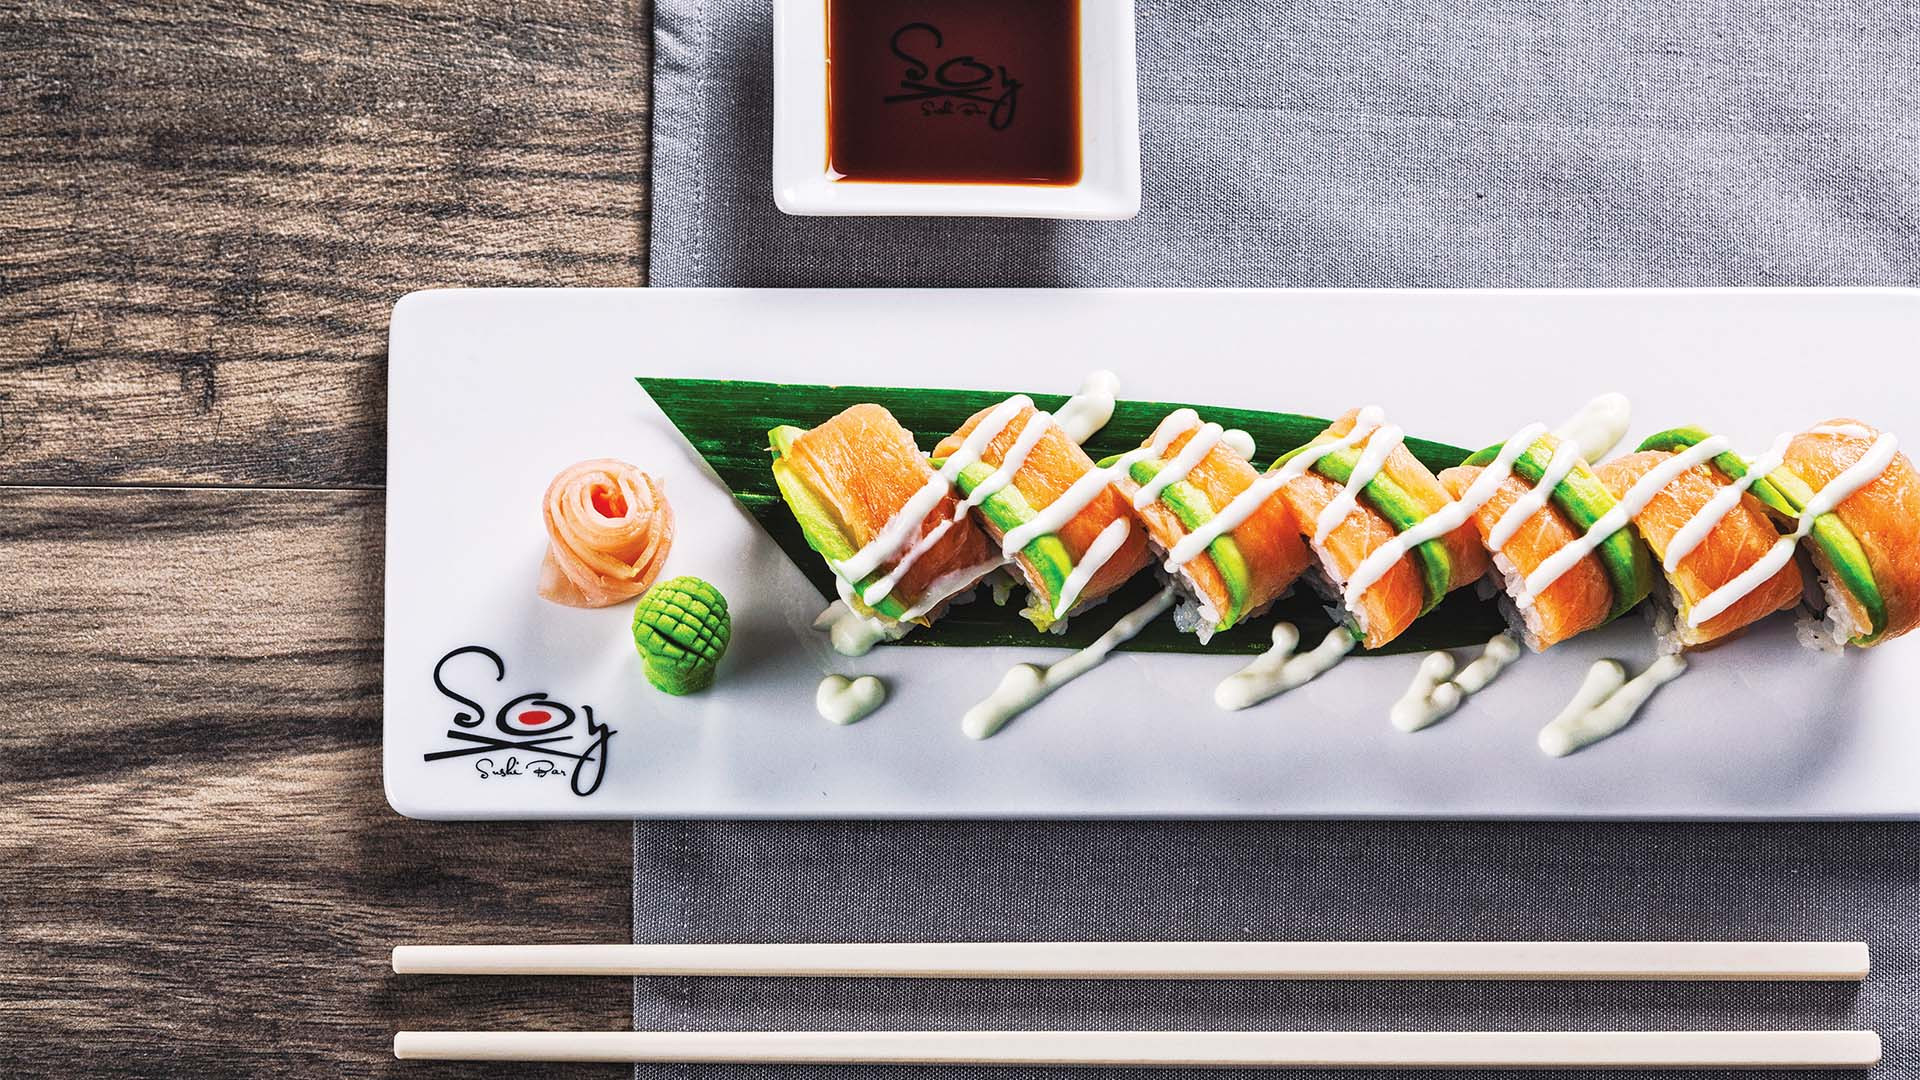 Soy sushi at Sandals resorts